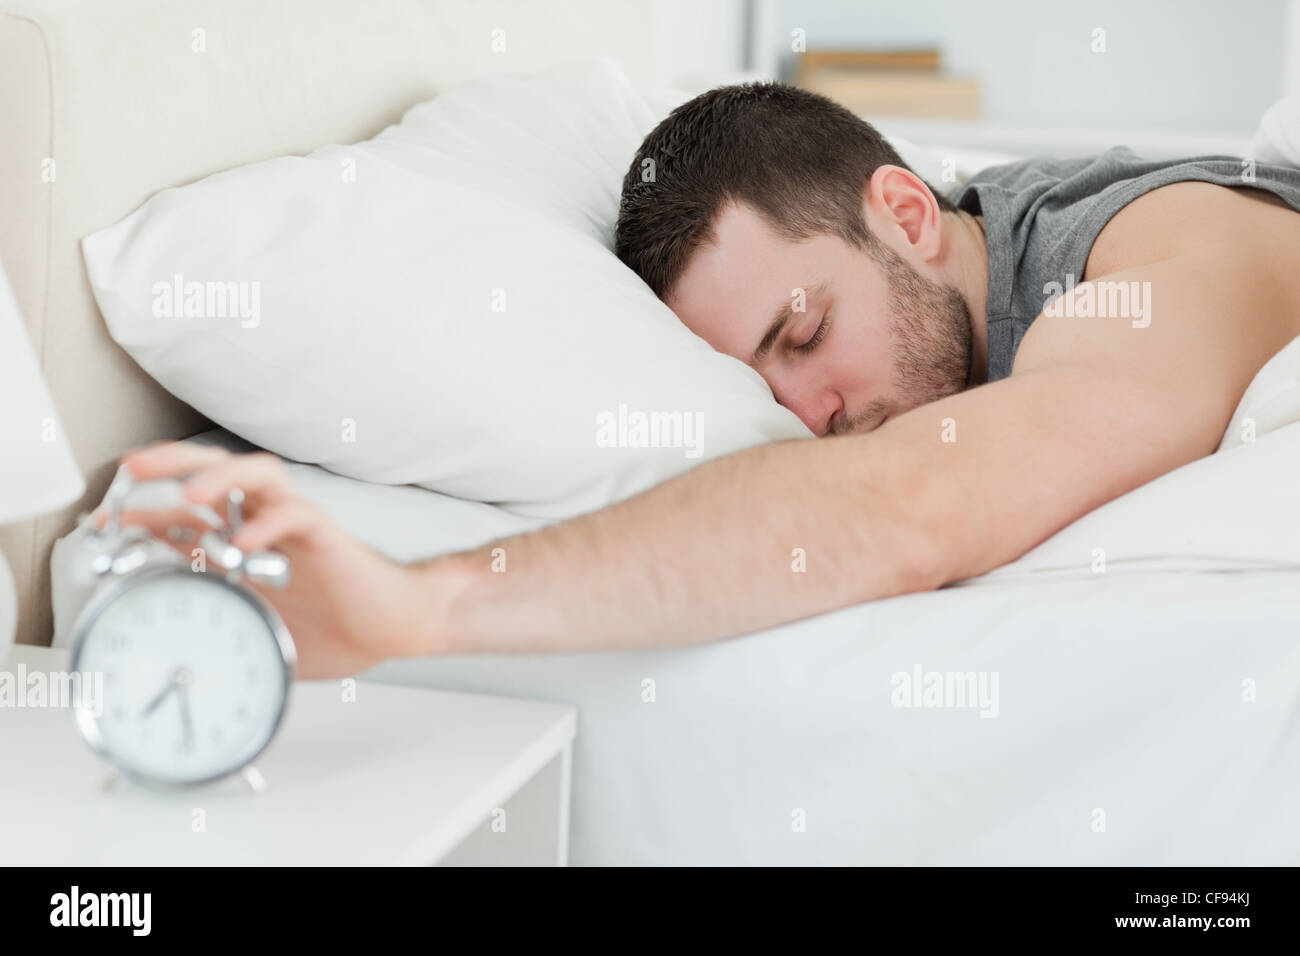 sleeping man being awakened by an alarm clock stock photo 43841830